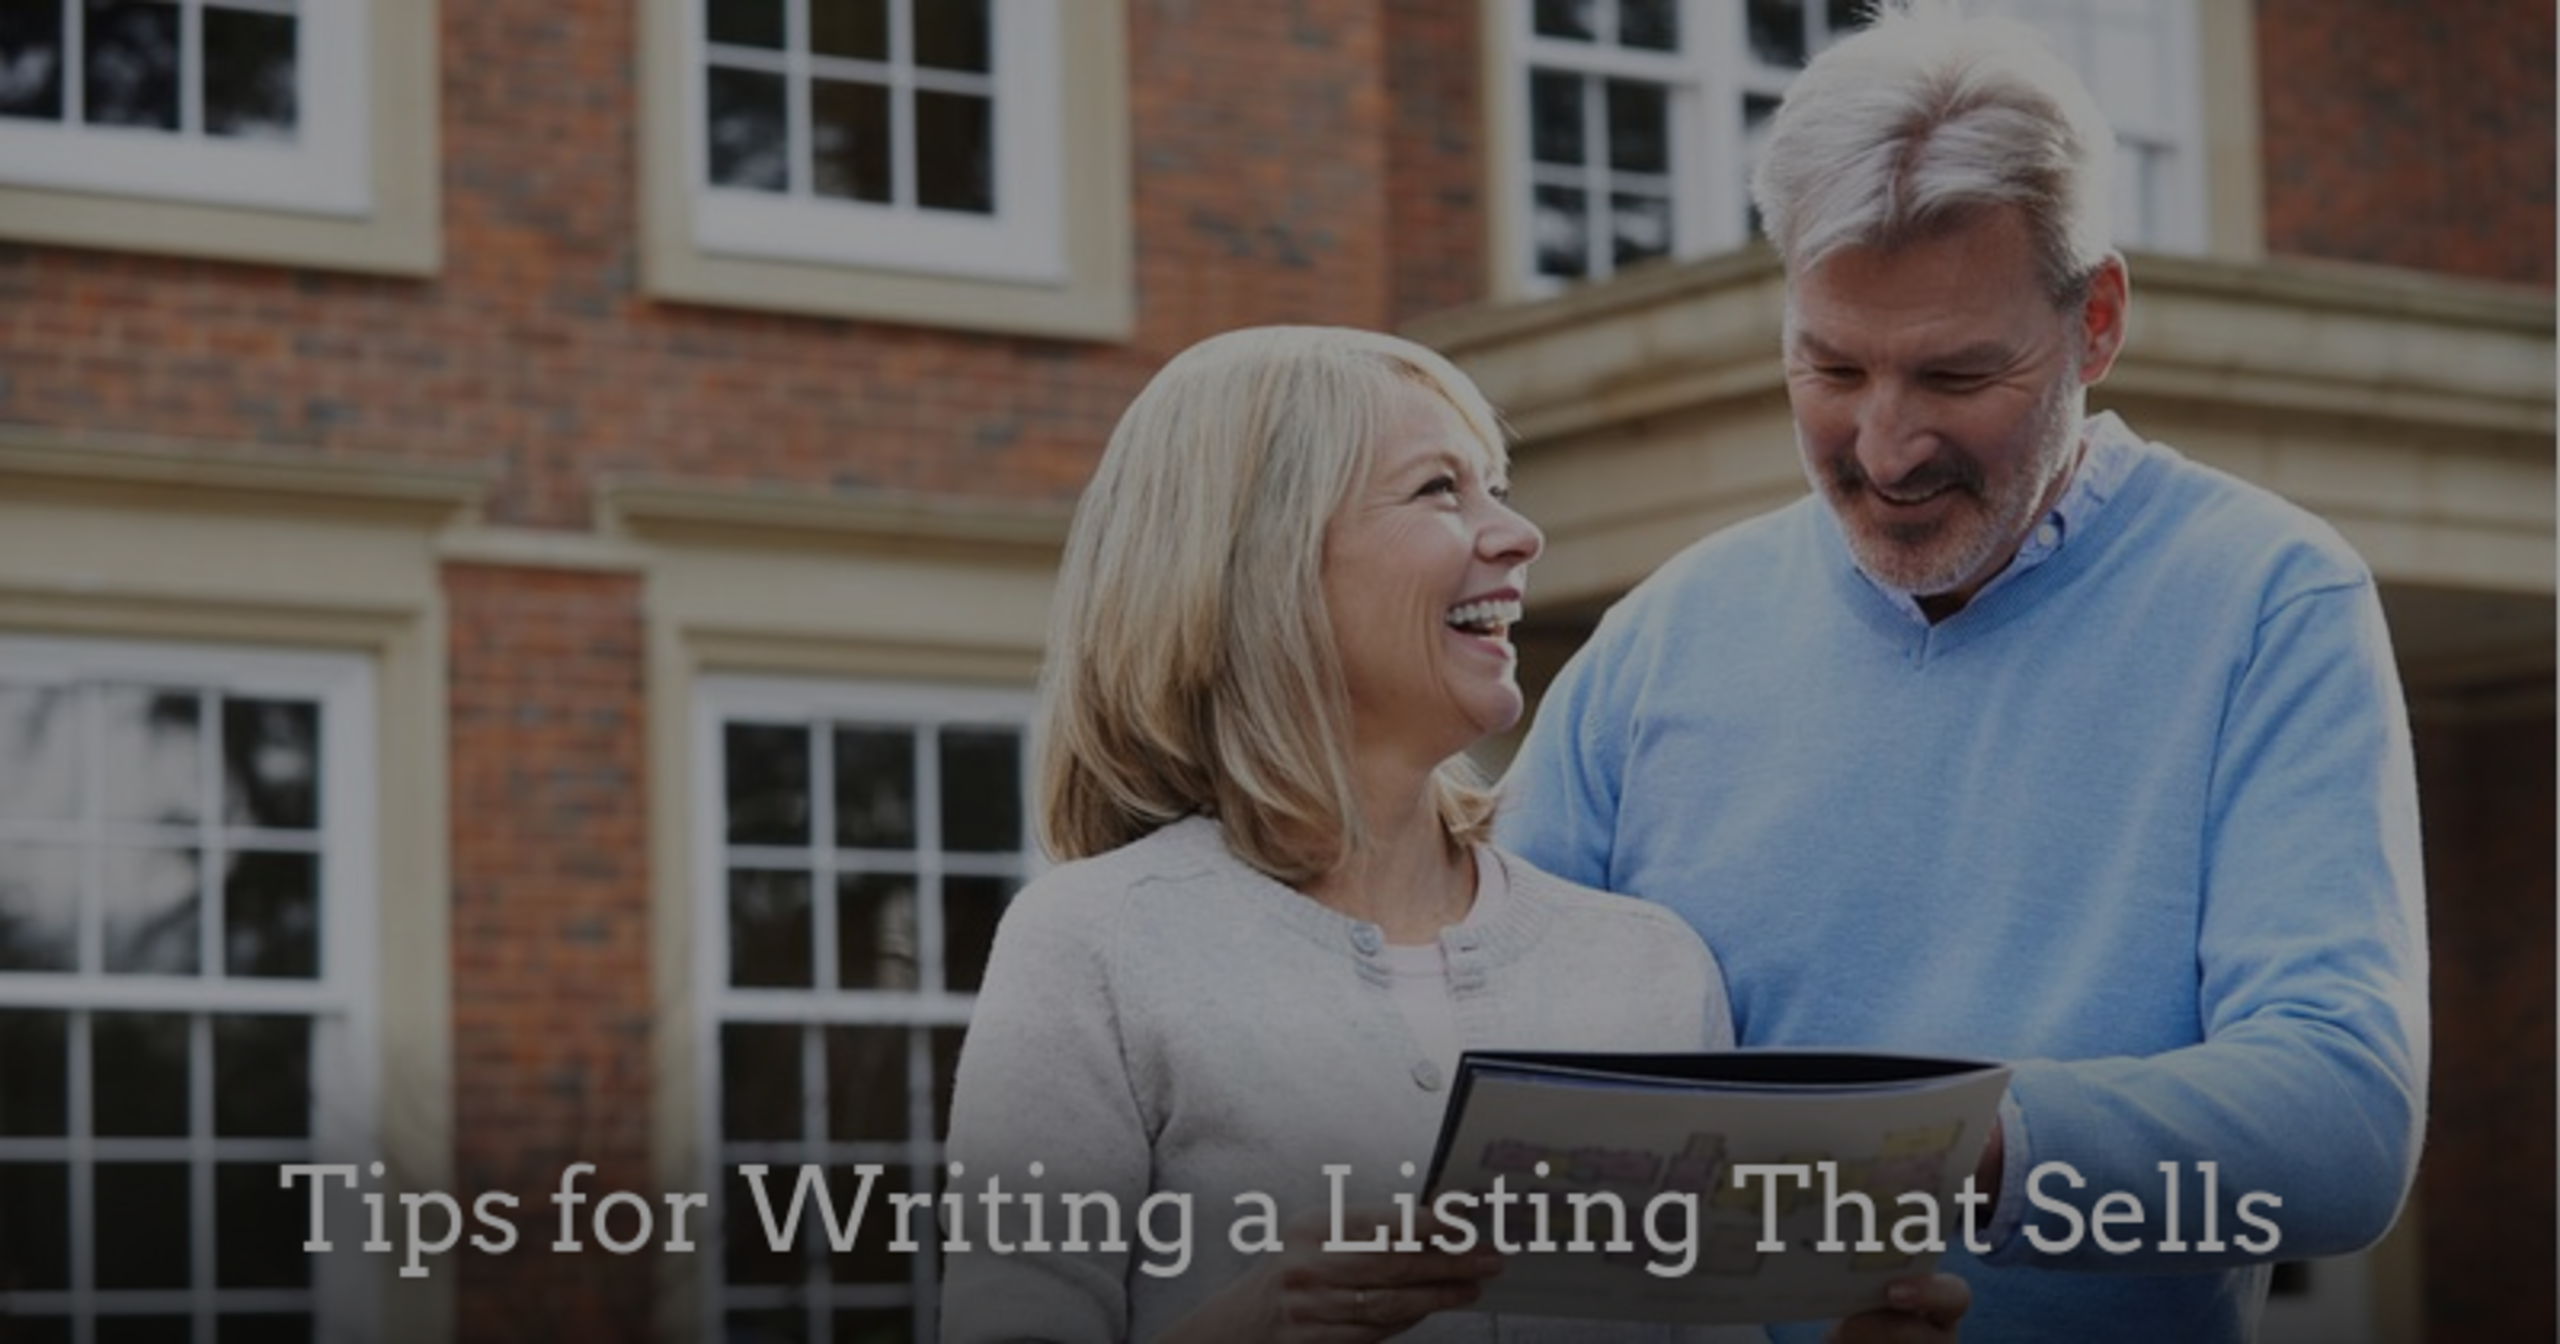 Tips for Writing a Listing That Sells